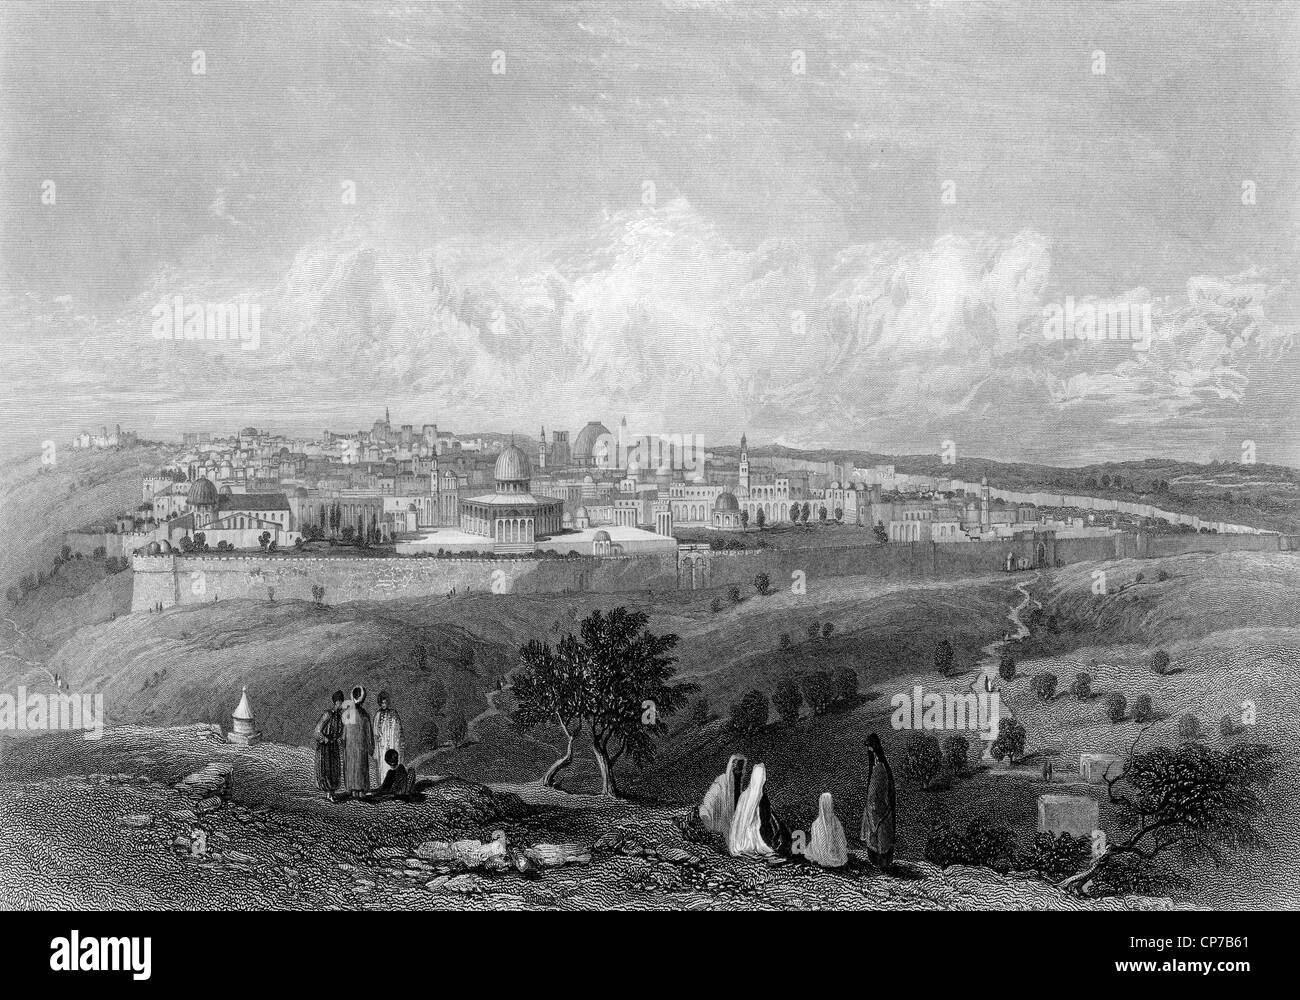 City of Jerusalem viewed from top of Mount of Olives in biblical times, Engraved, by William Miller in 1866. - Stock Image